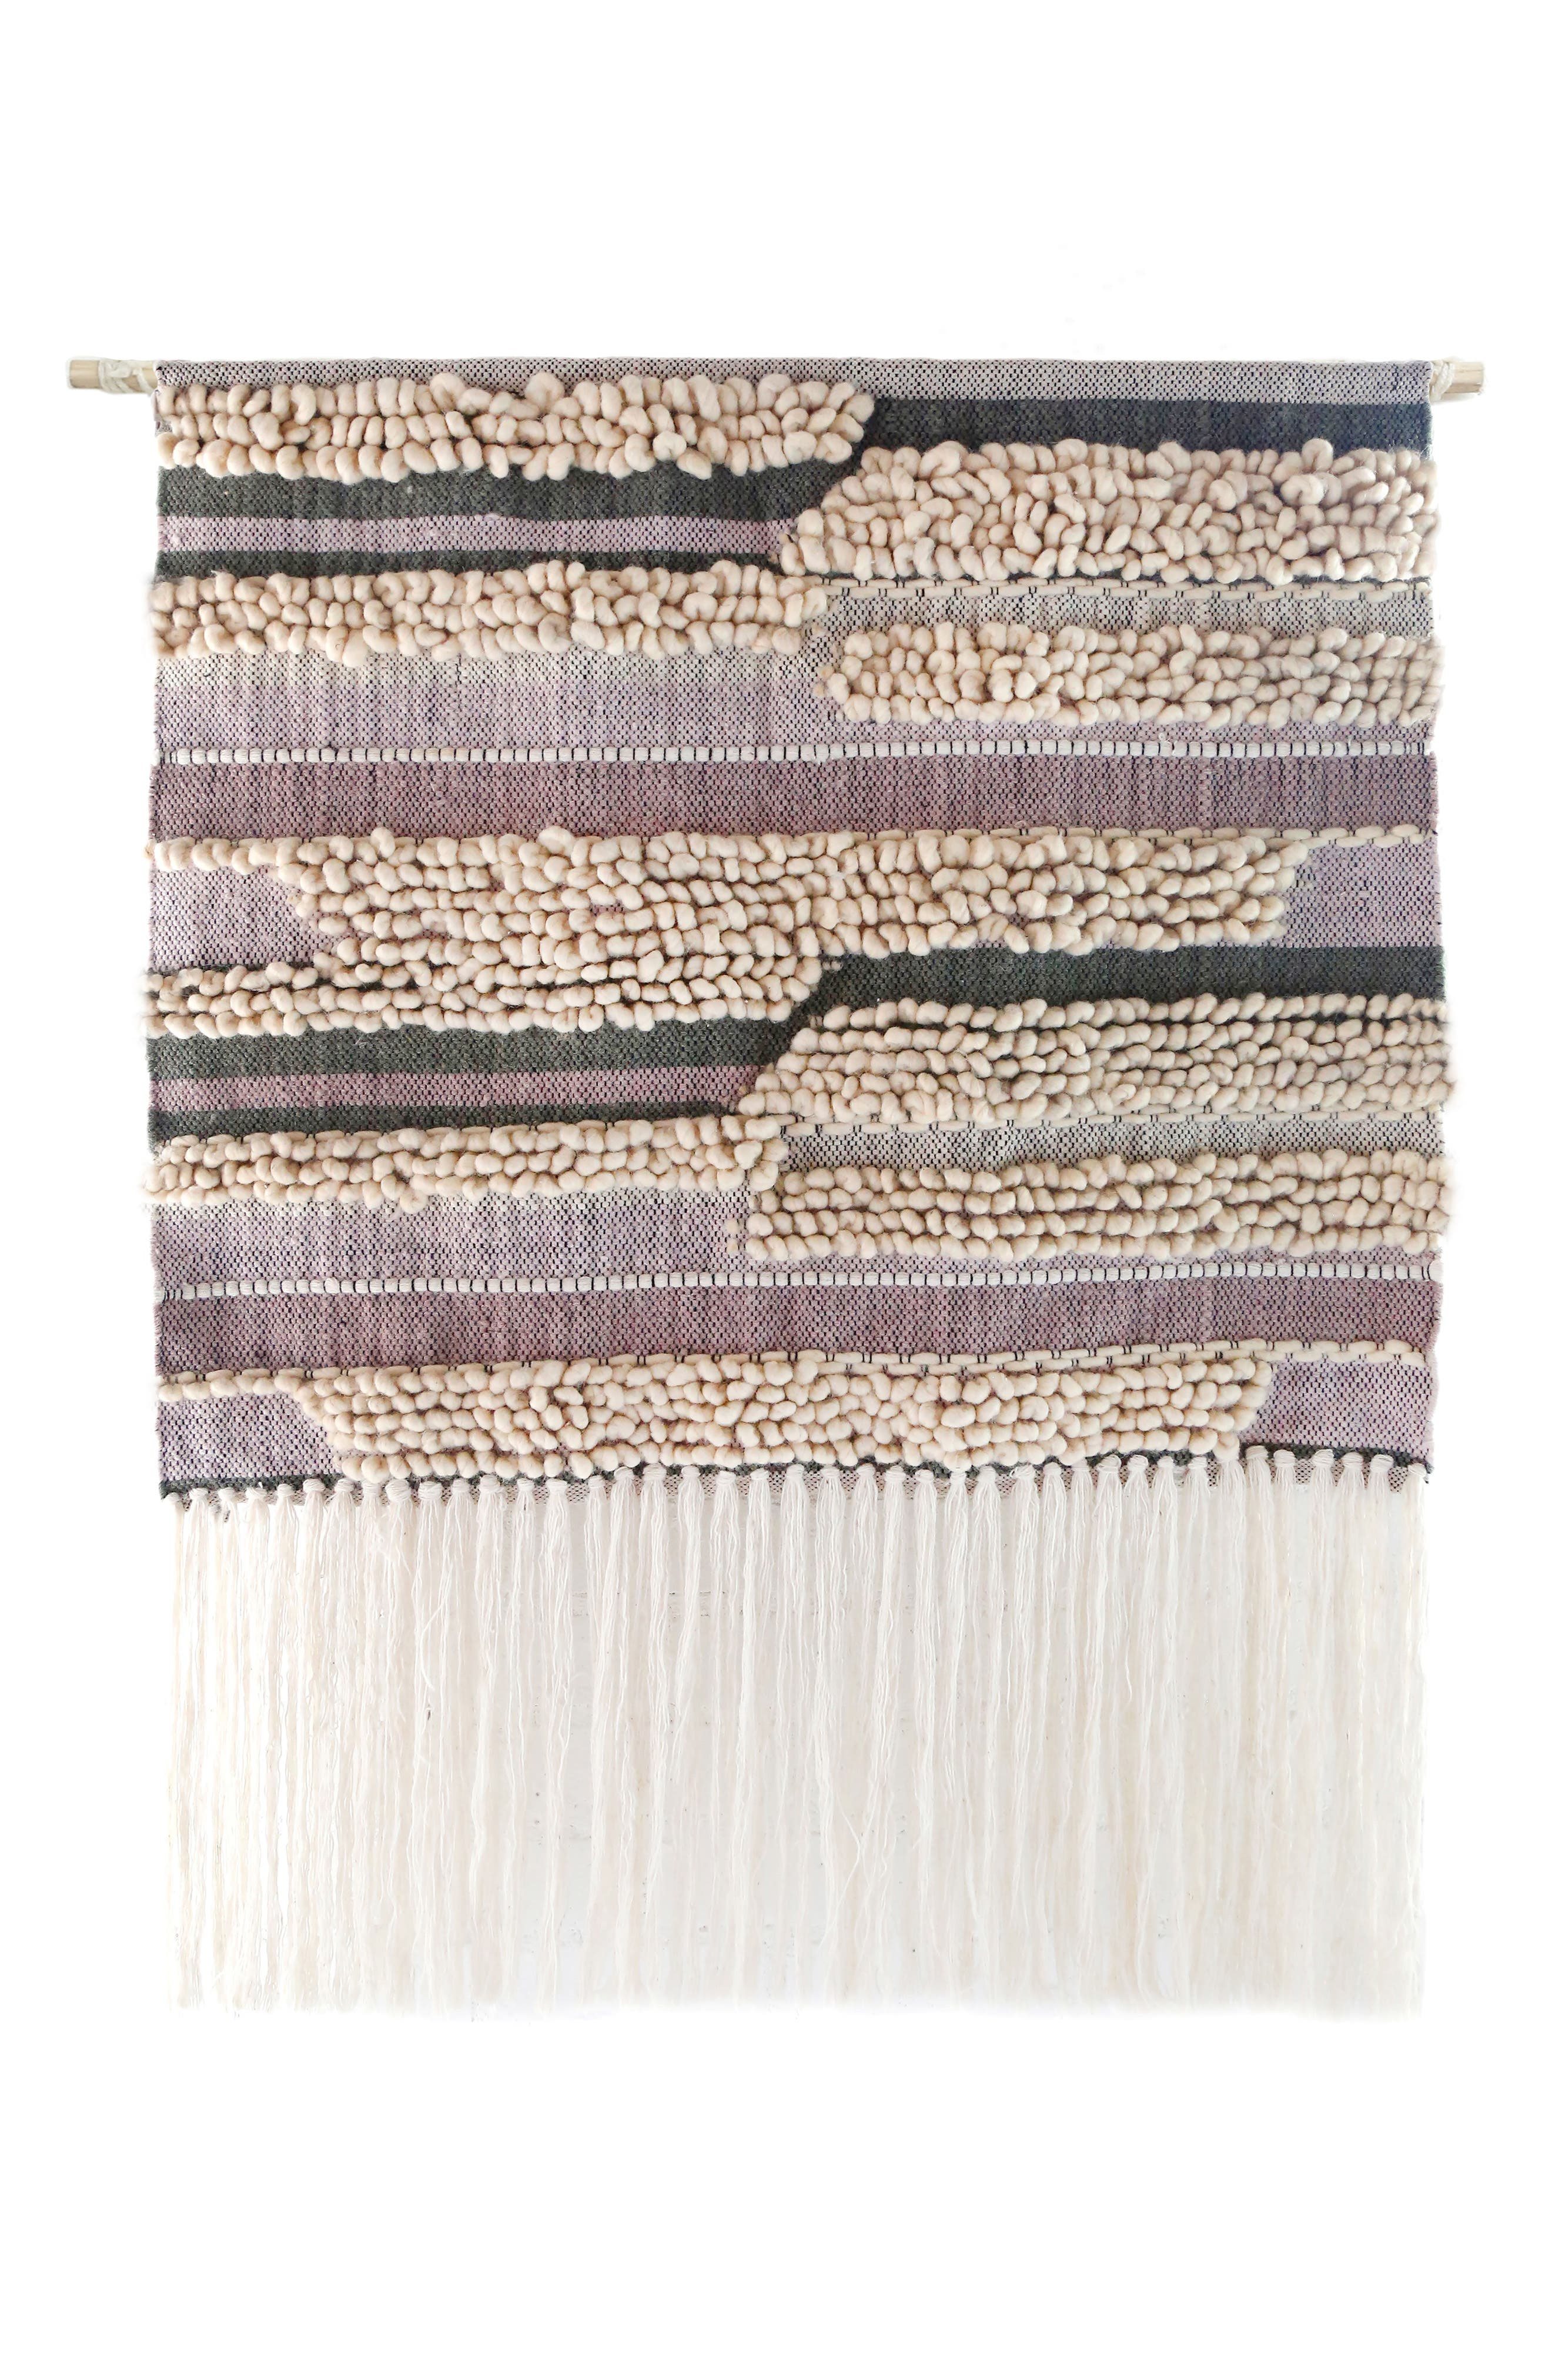 Safi Handwoven Wool Wall Hanging,                             Main thumbnail 1, color,                             Ivory/ Berry/ Moss